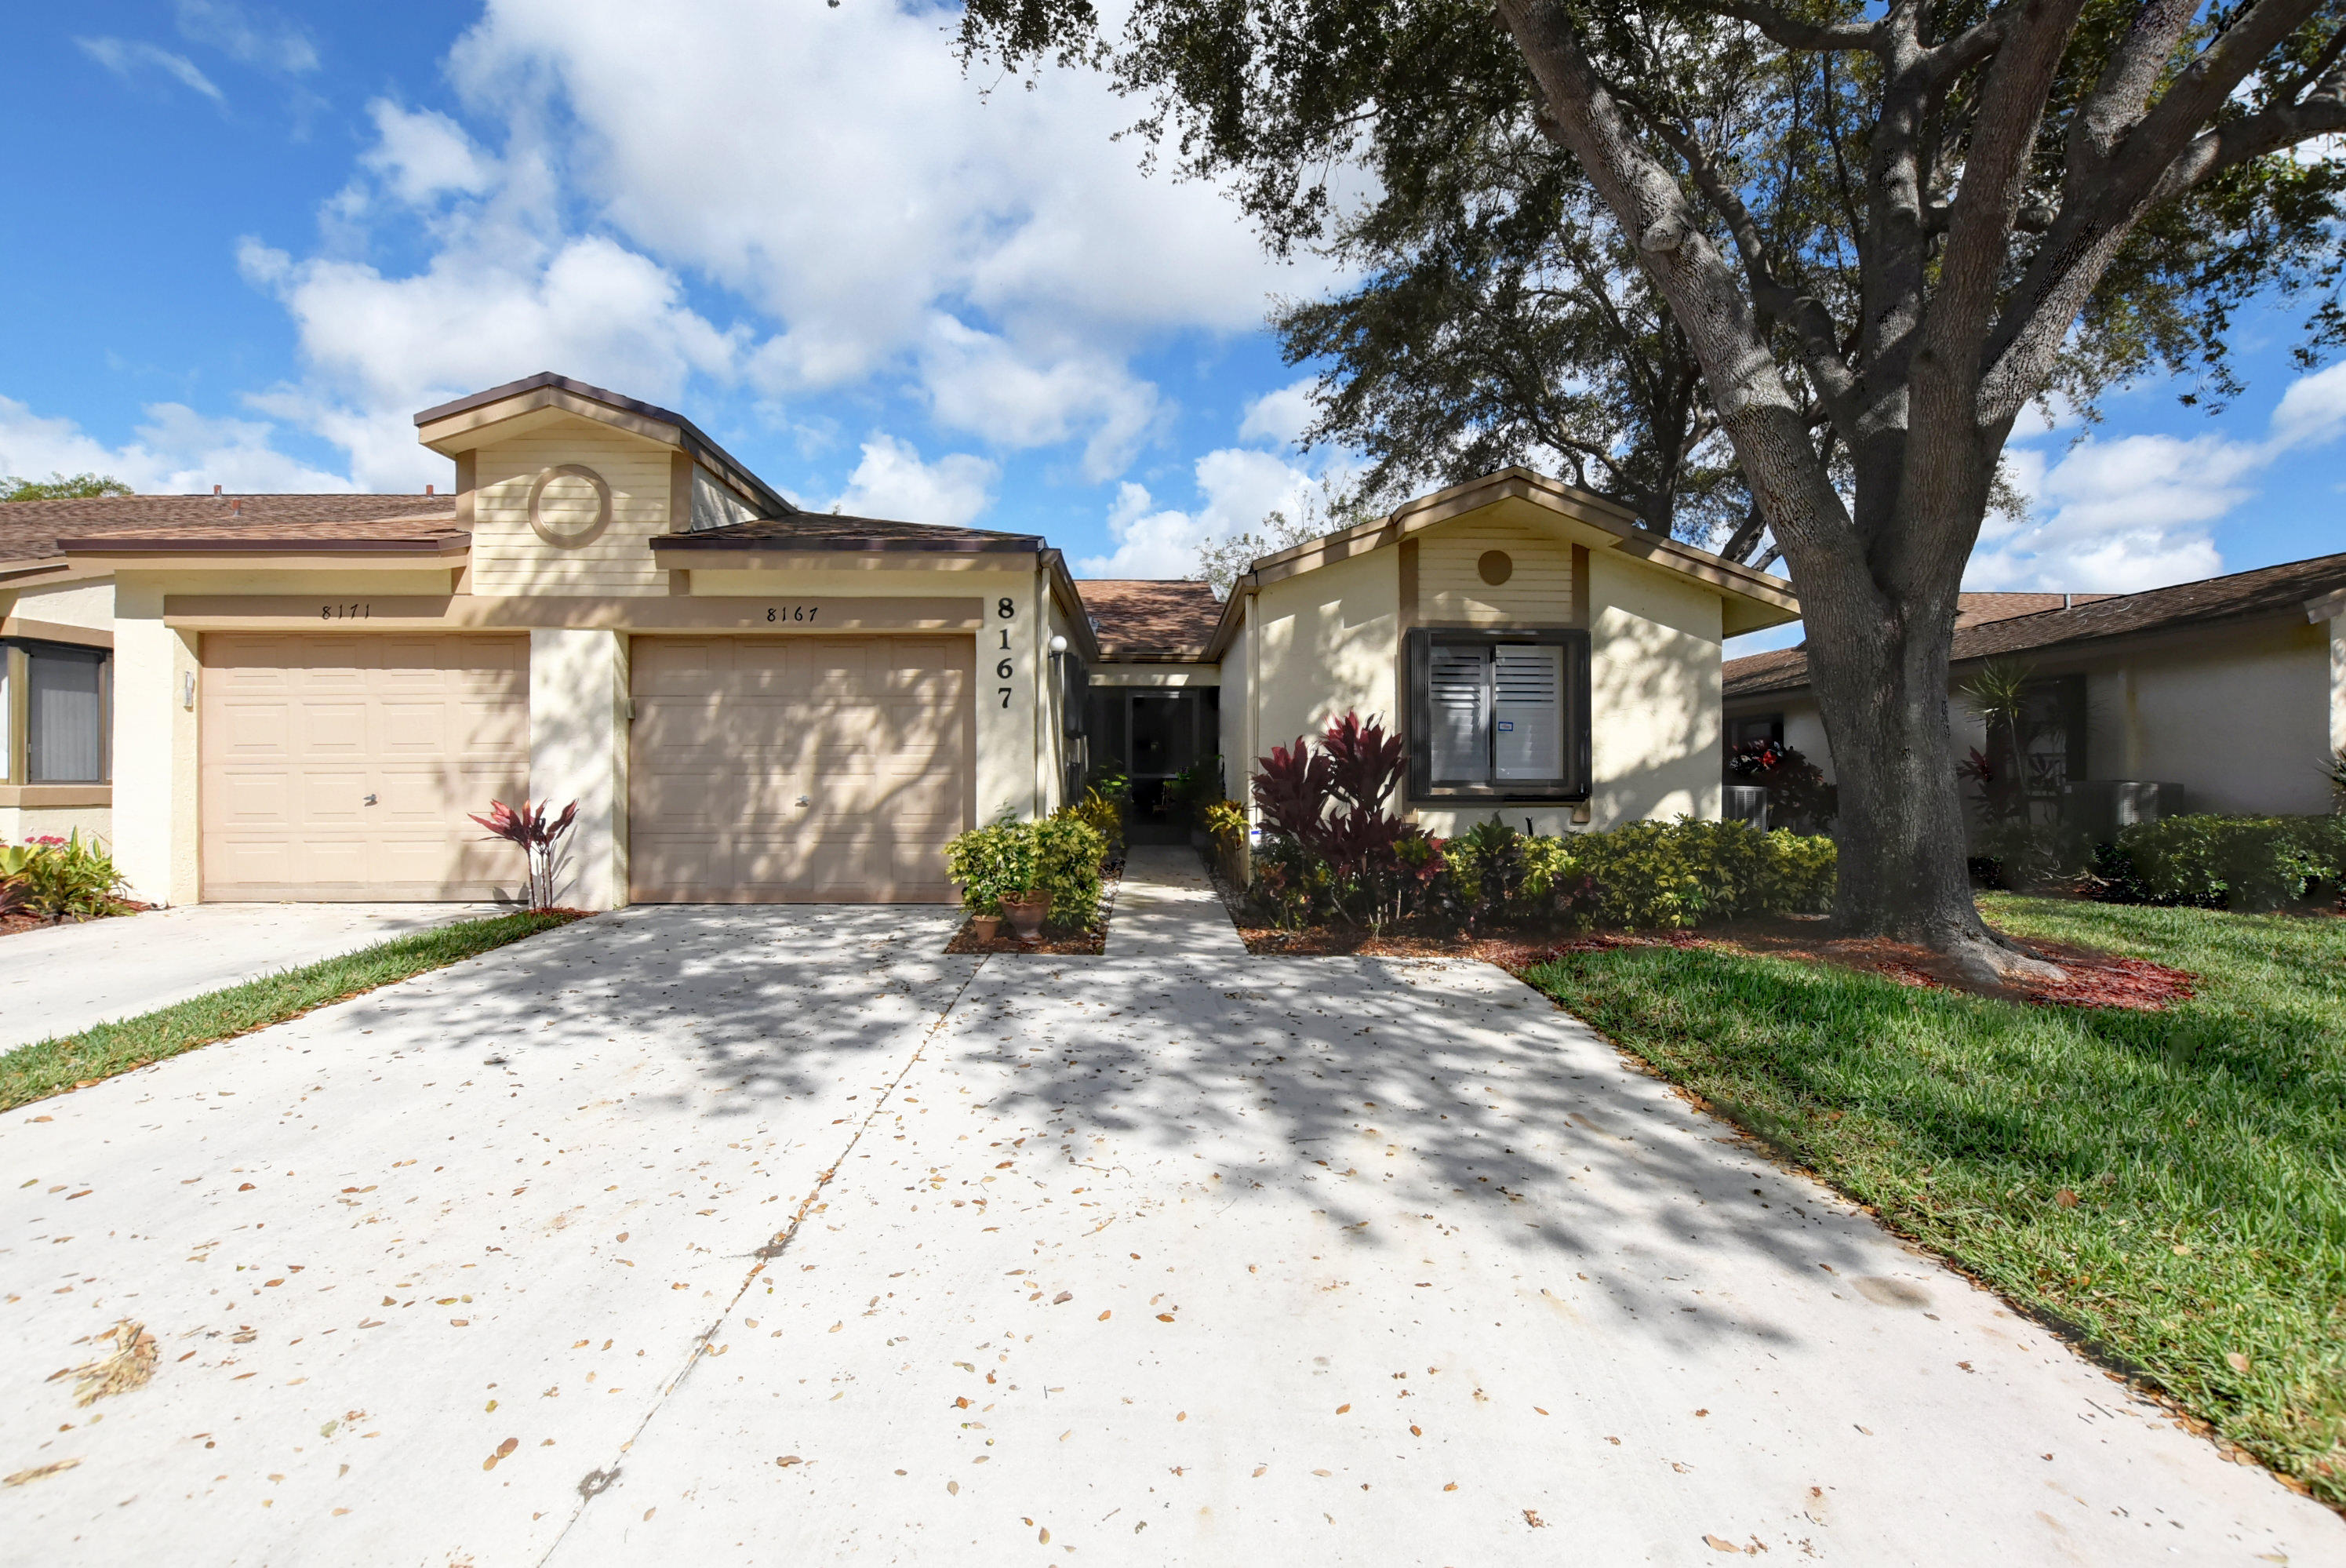 Photo of home for sale at 8167 Whispering Palm Drive, Boca Raton FL